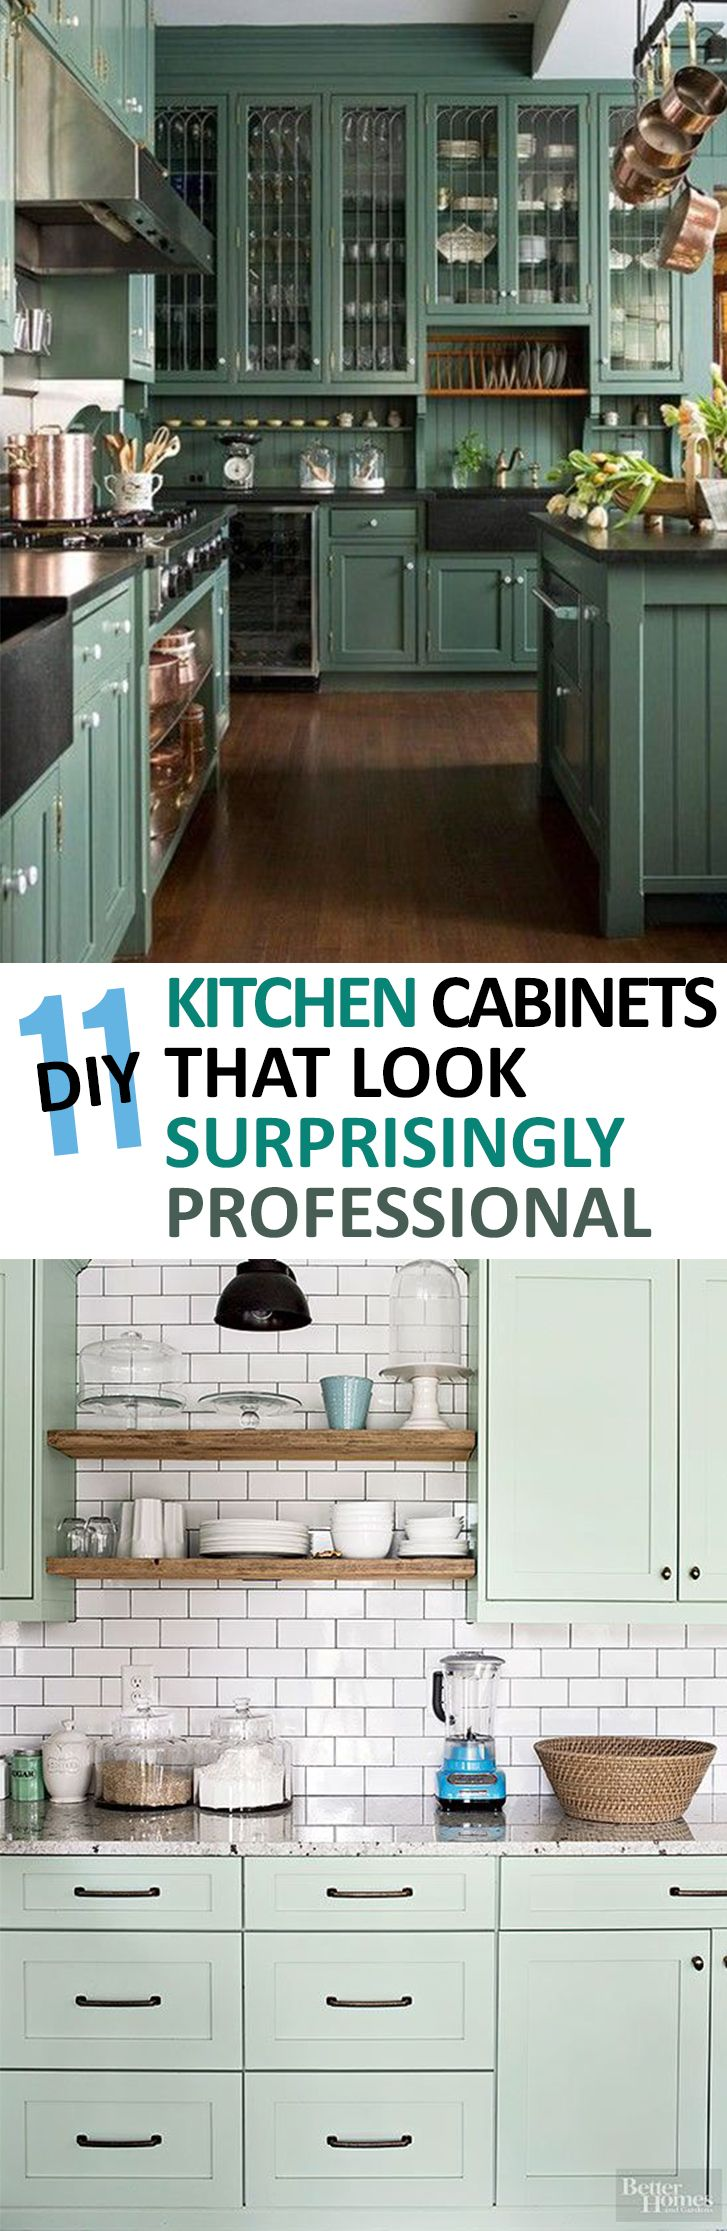 11 DIY Kitchen Cabinets That Look Surprisingly Professional